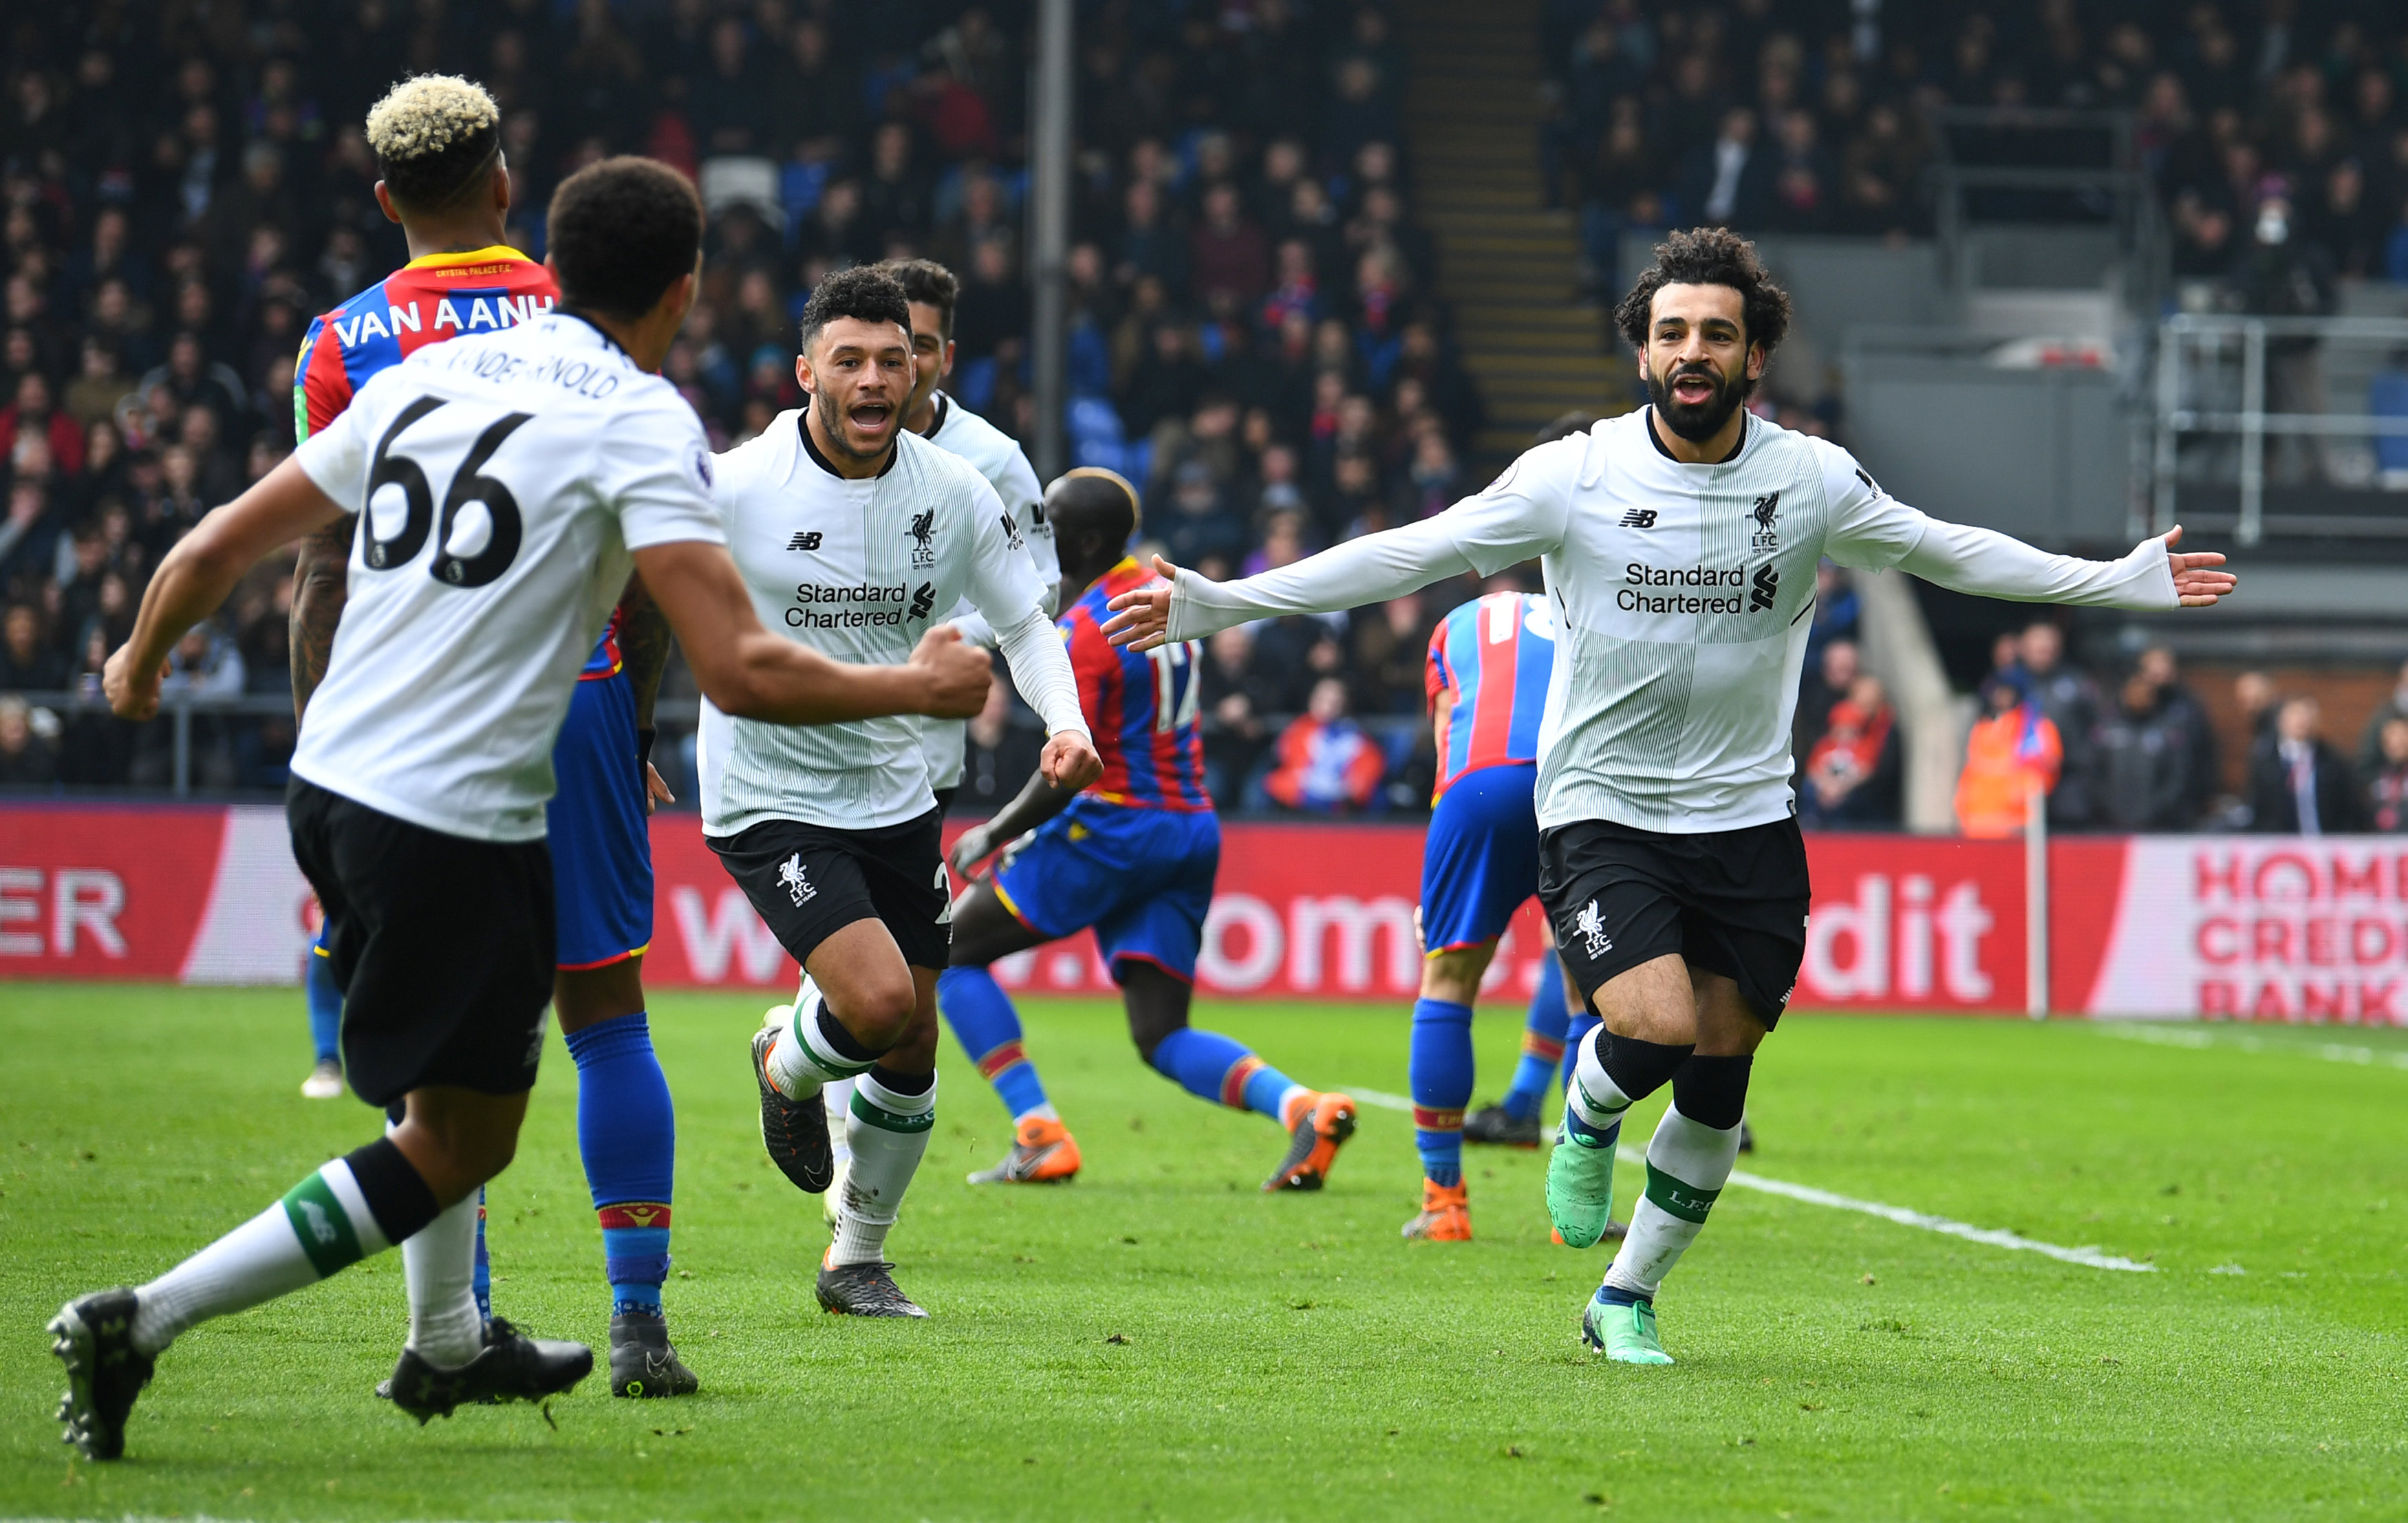 Soccer Football - Premier League - Crystal Palace vs Liverpool - Selhurst Park, London, Britain - March 31, 2018   Liverpool's Mohamed Salah celebrates scoring their second goal with Alex Oxlade-Chamberlain and Trent Alexander-Arnold    REUTERS